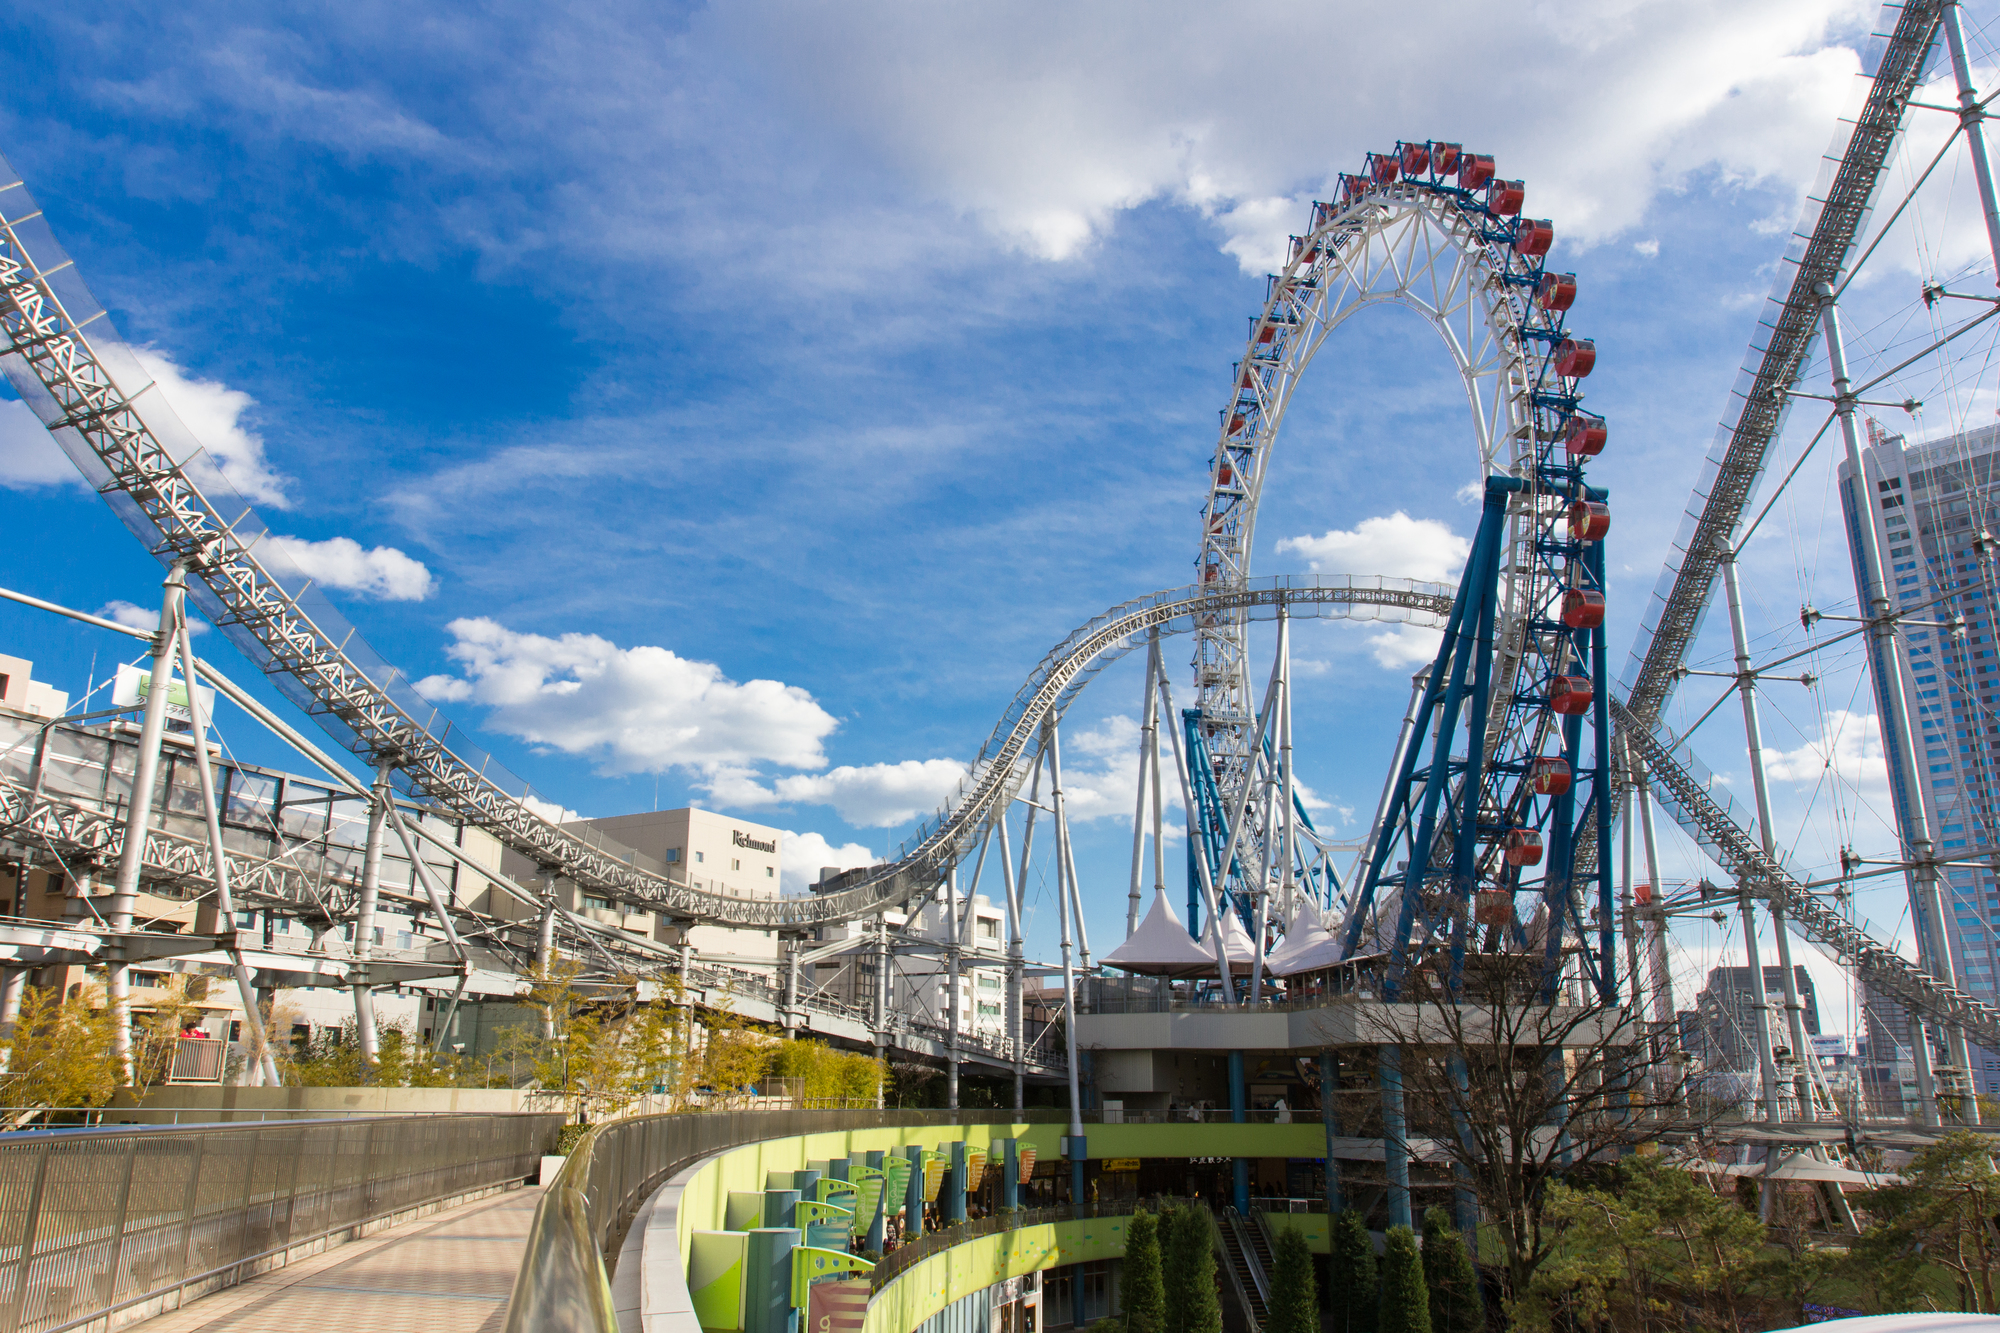 TOKYO DOME CITY and its Roller Coasters